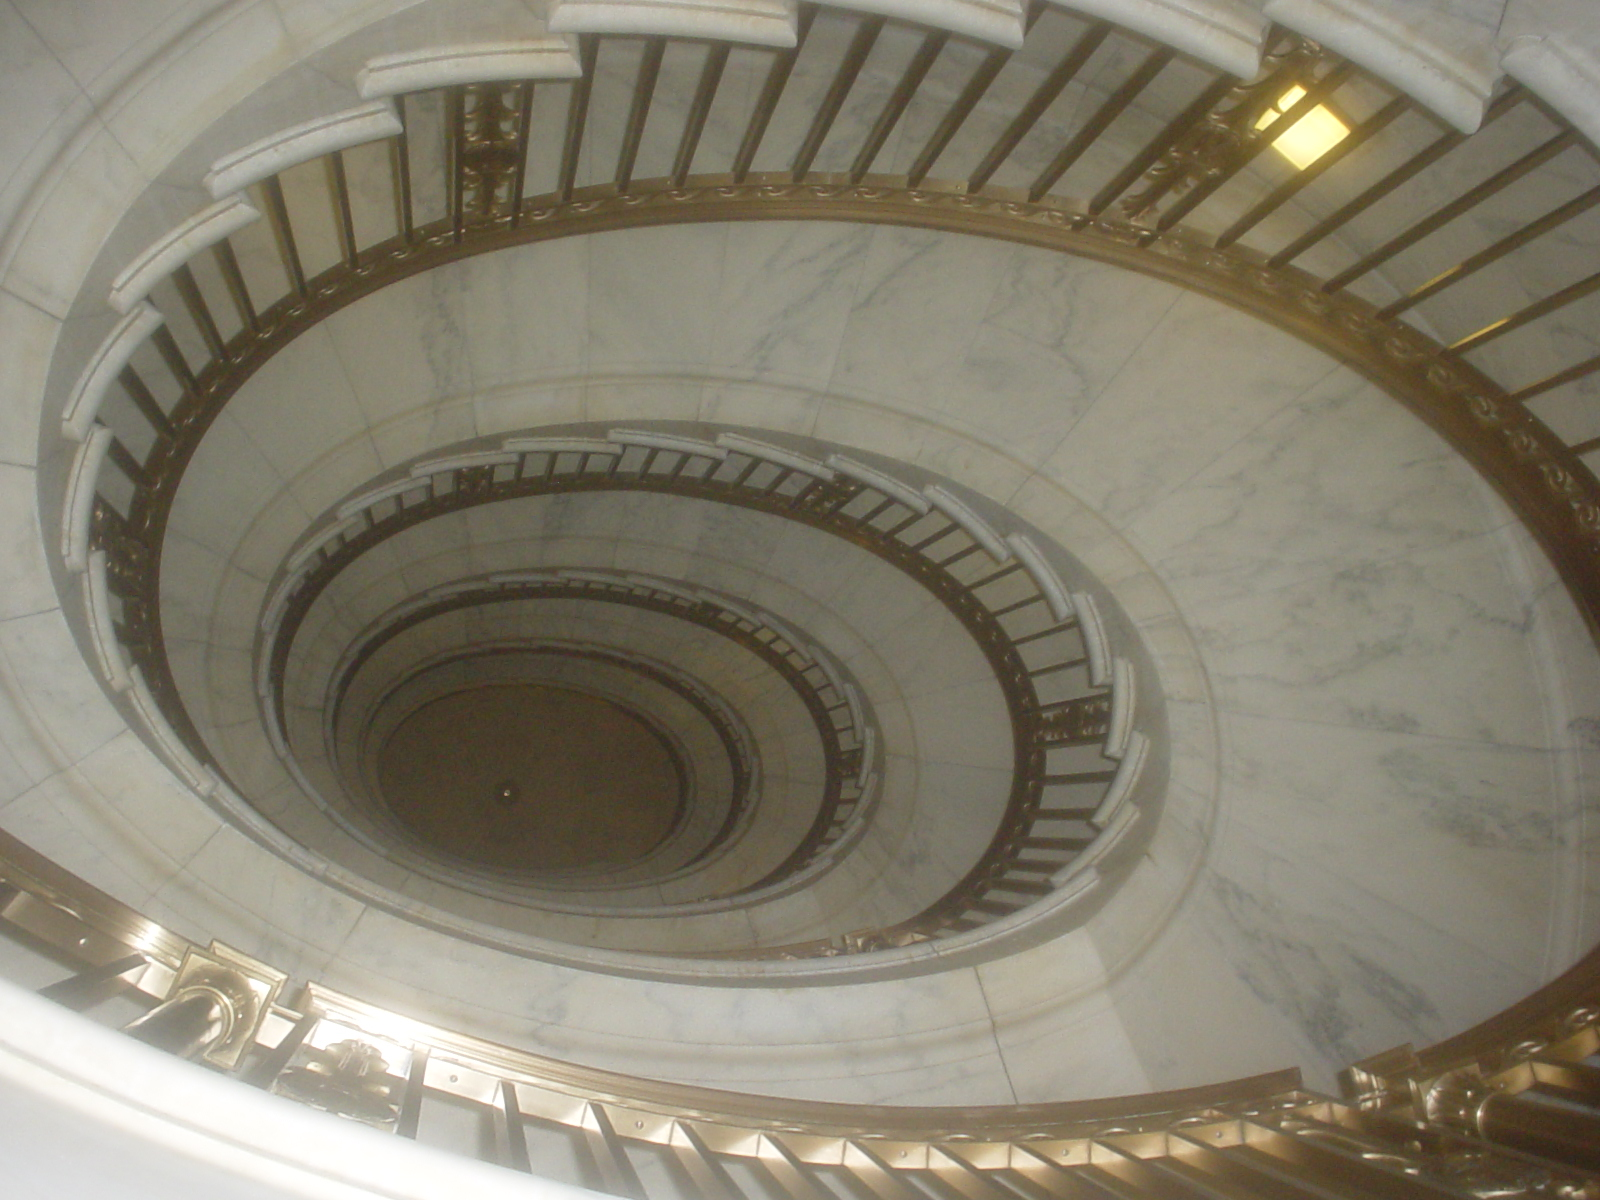 File:Supreme Spiral Staircase - Rory Finneren.jpg - Wikimedia Commons